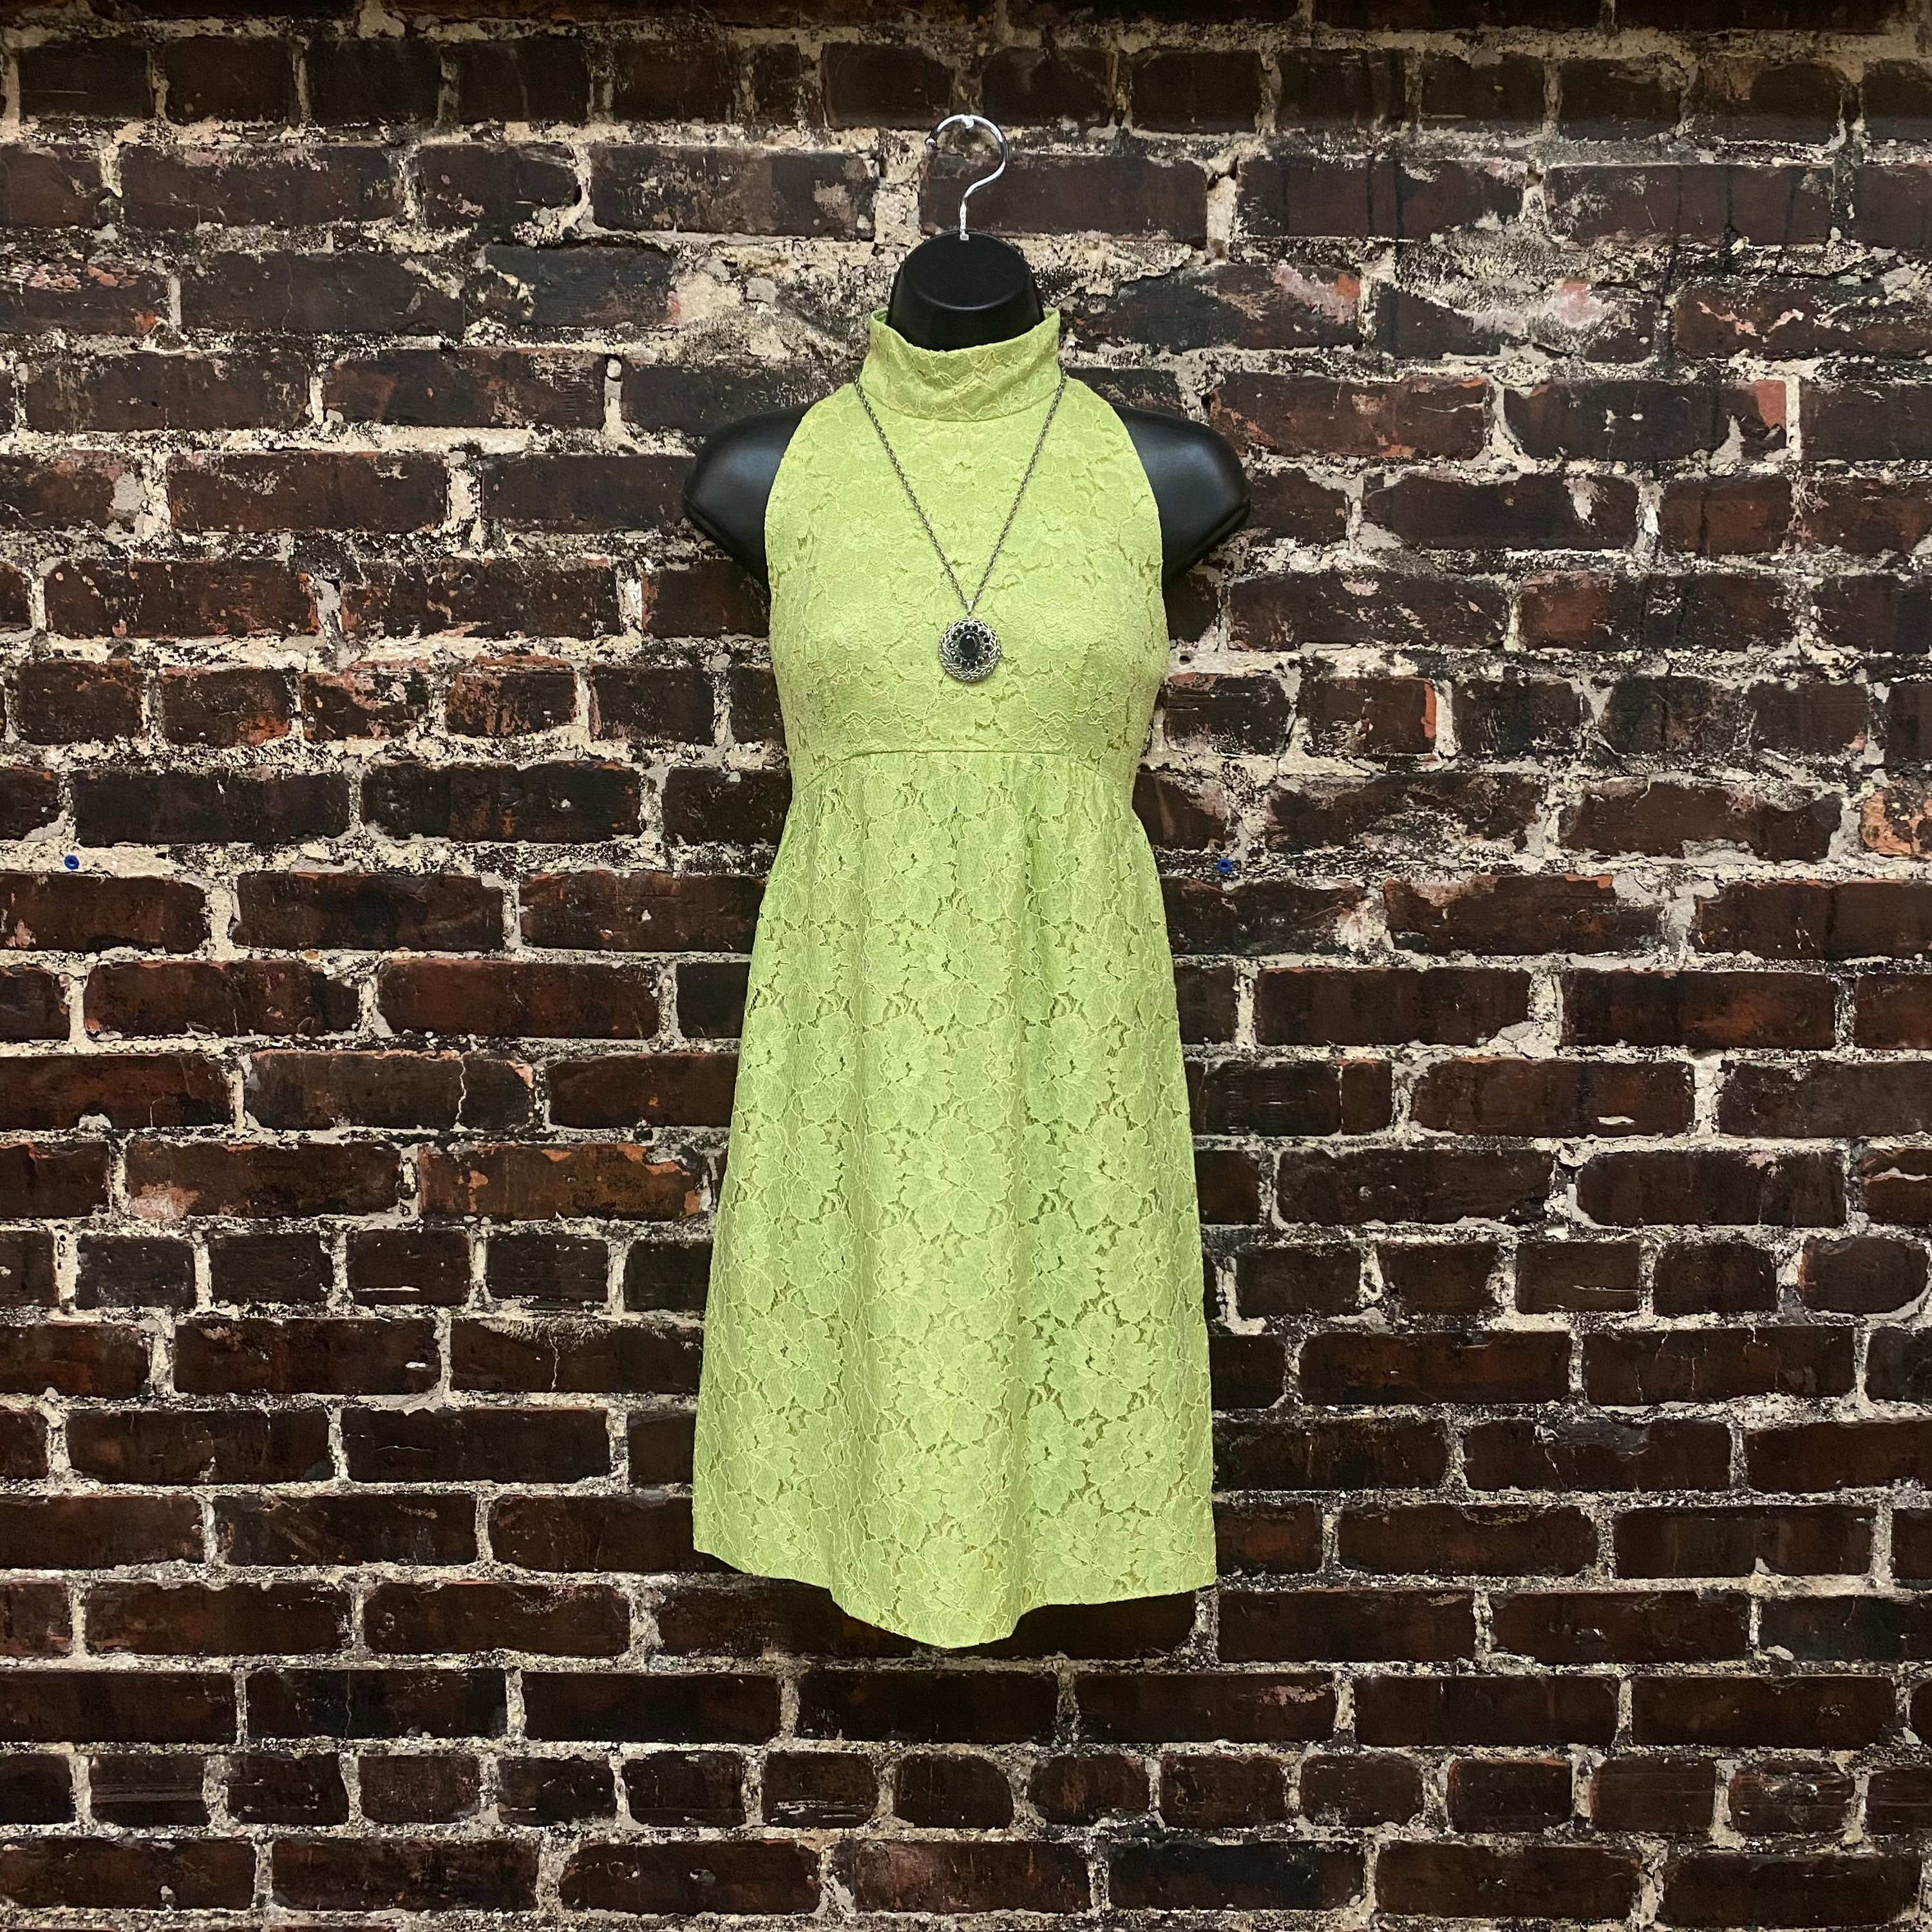 60s -70s Jewelry – Necklaces, Earrings, Rings, Bracelets 1960S Lace Mini Dress. Lime Green Mock Neck 60S Sleeveless Turtleneck Dress By Irving Nadler. Womens Extra Small, 34 Bust $0.00 AT vintagedancer.com